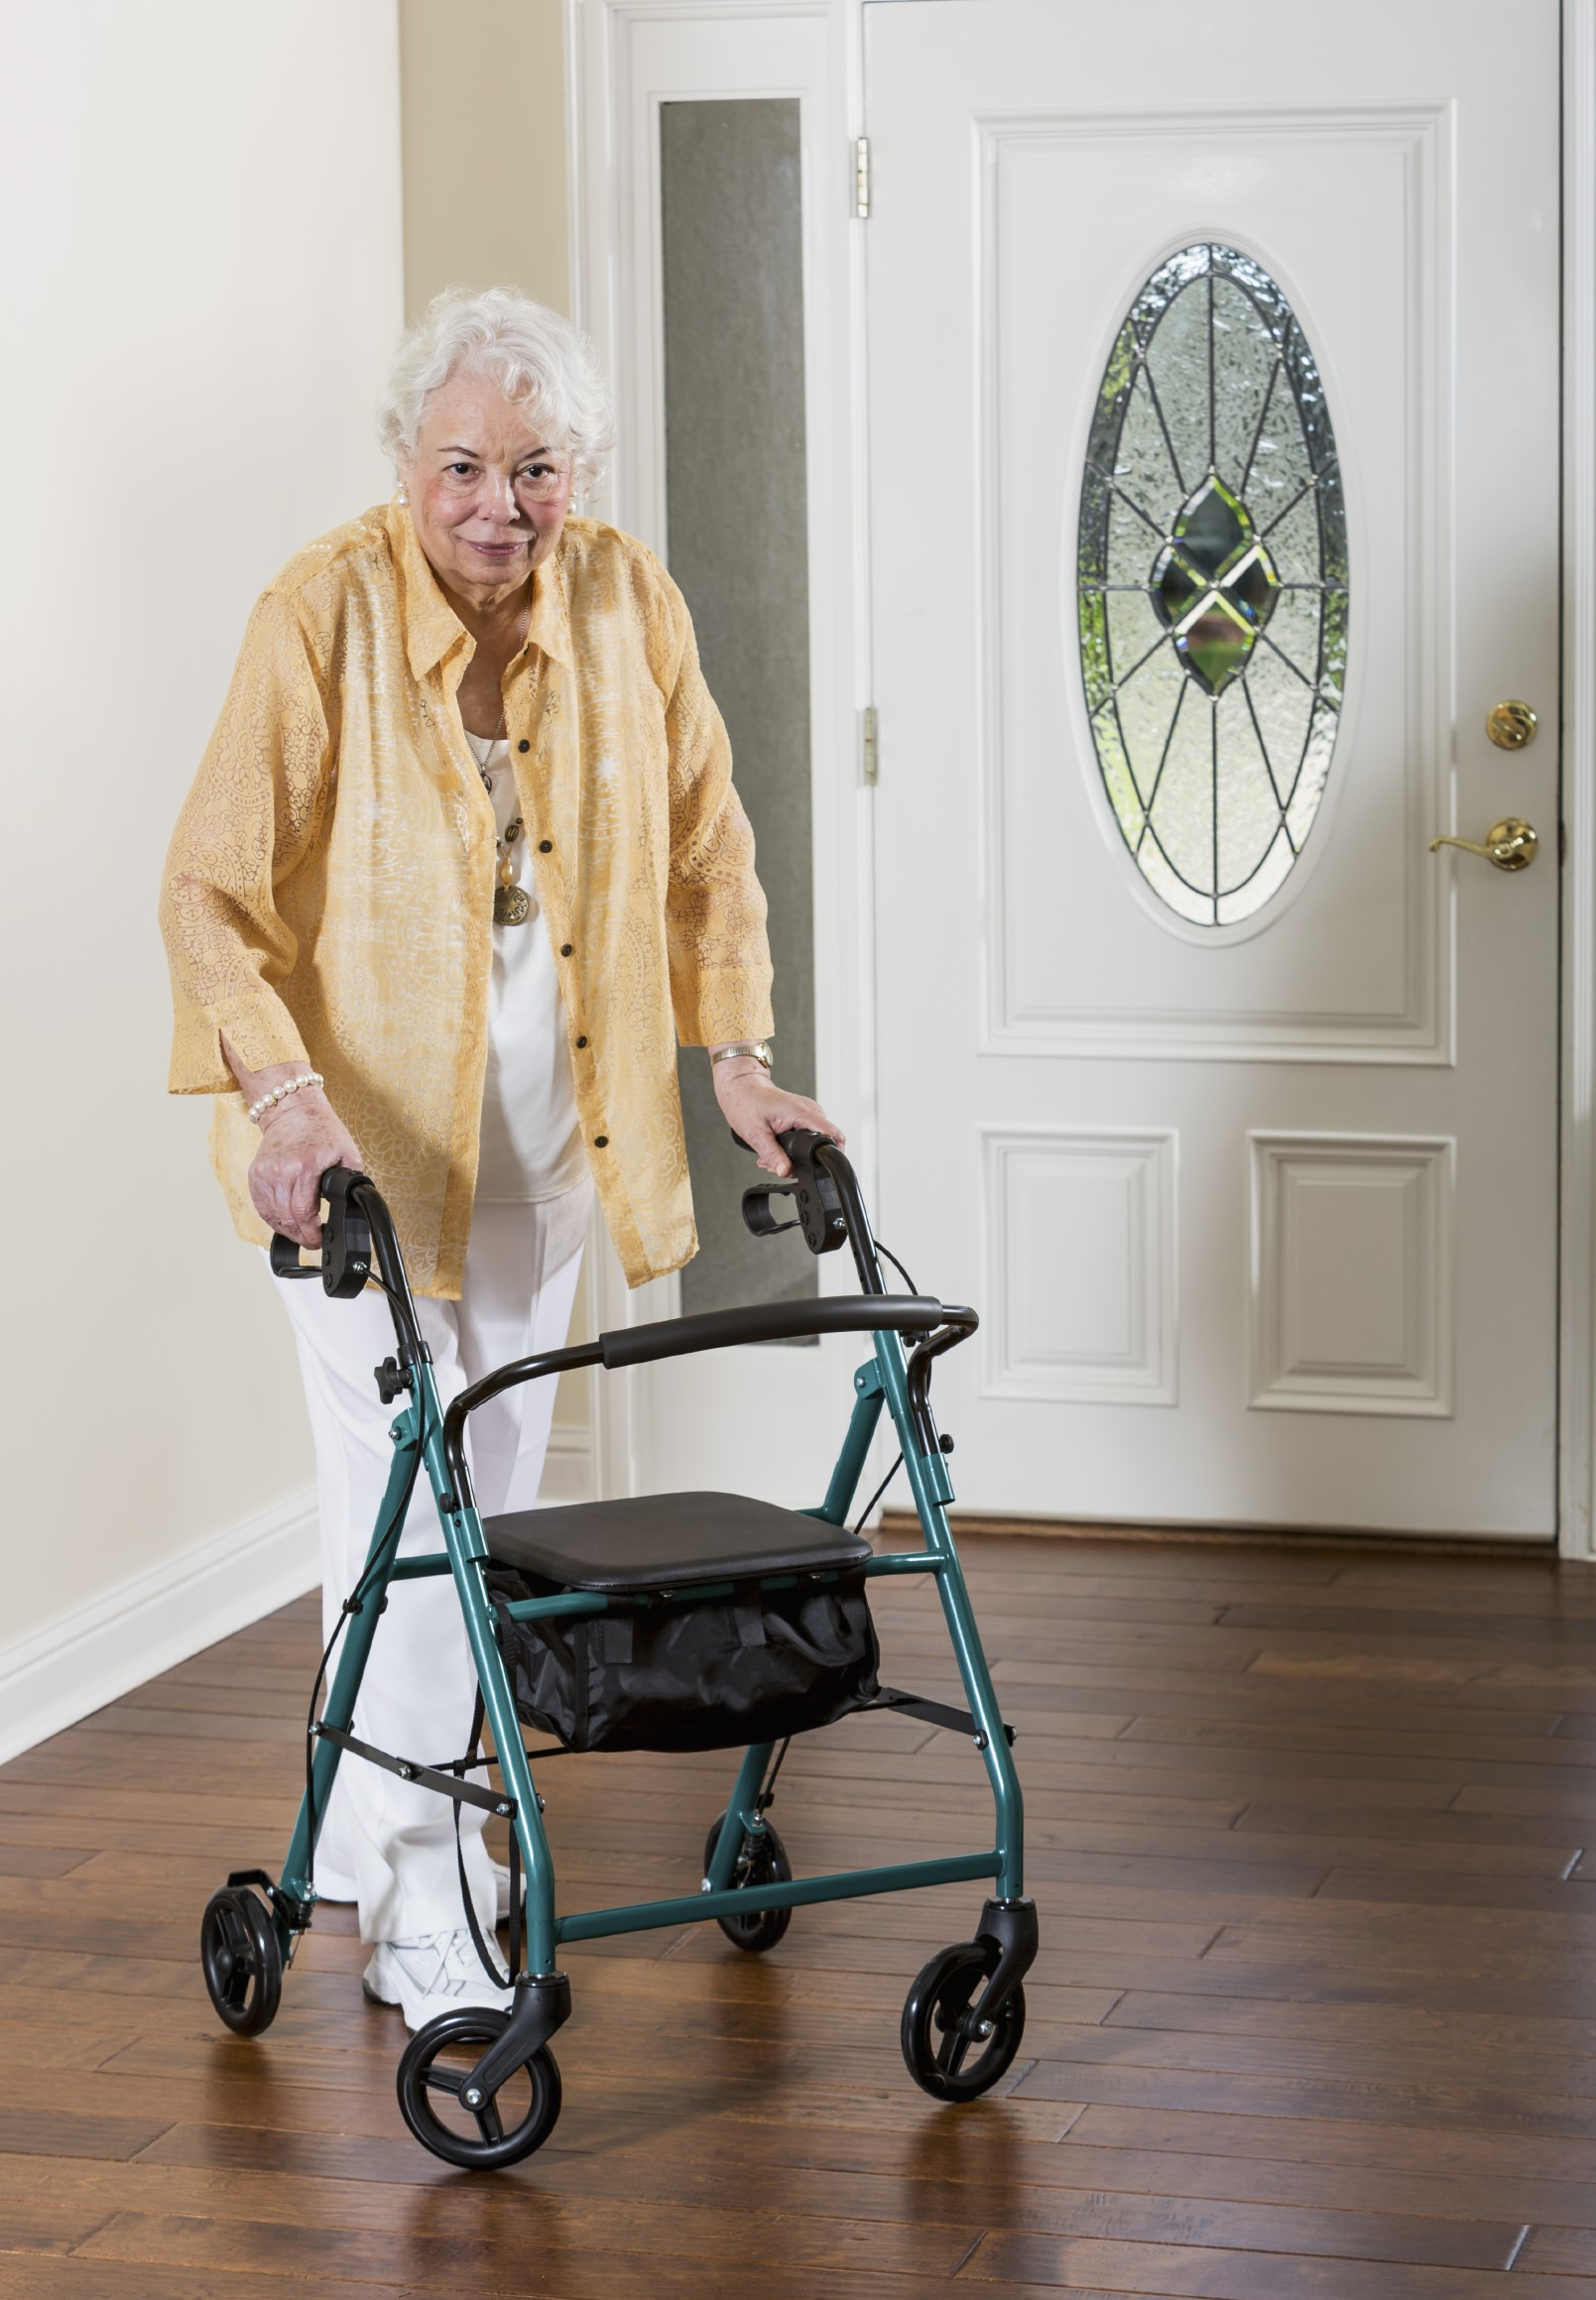 v2_Senior_Woman_Using_Walker_In_Home_-_Copy.jpg